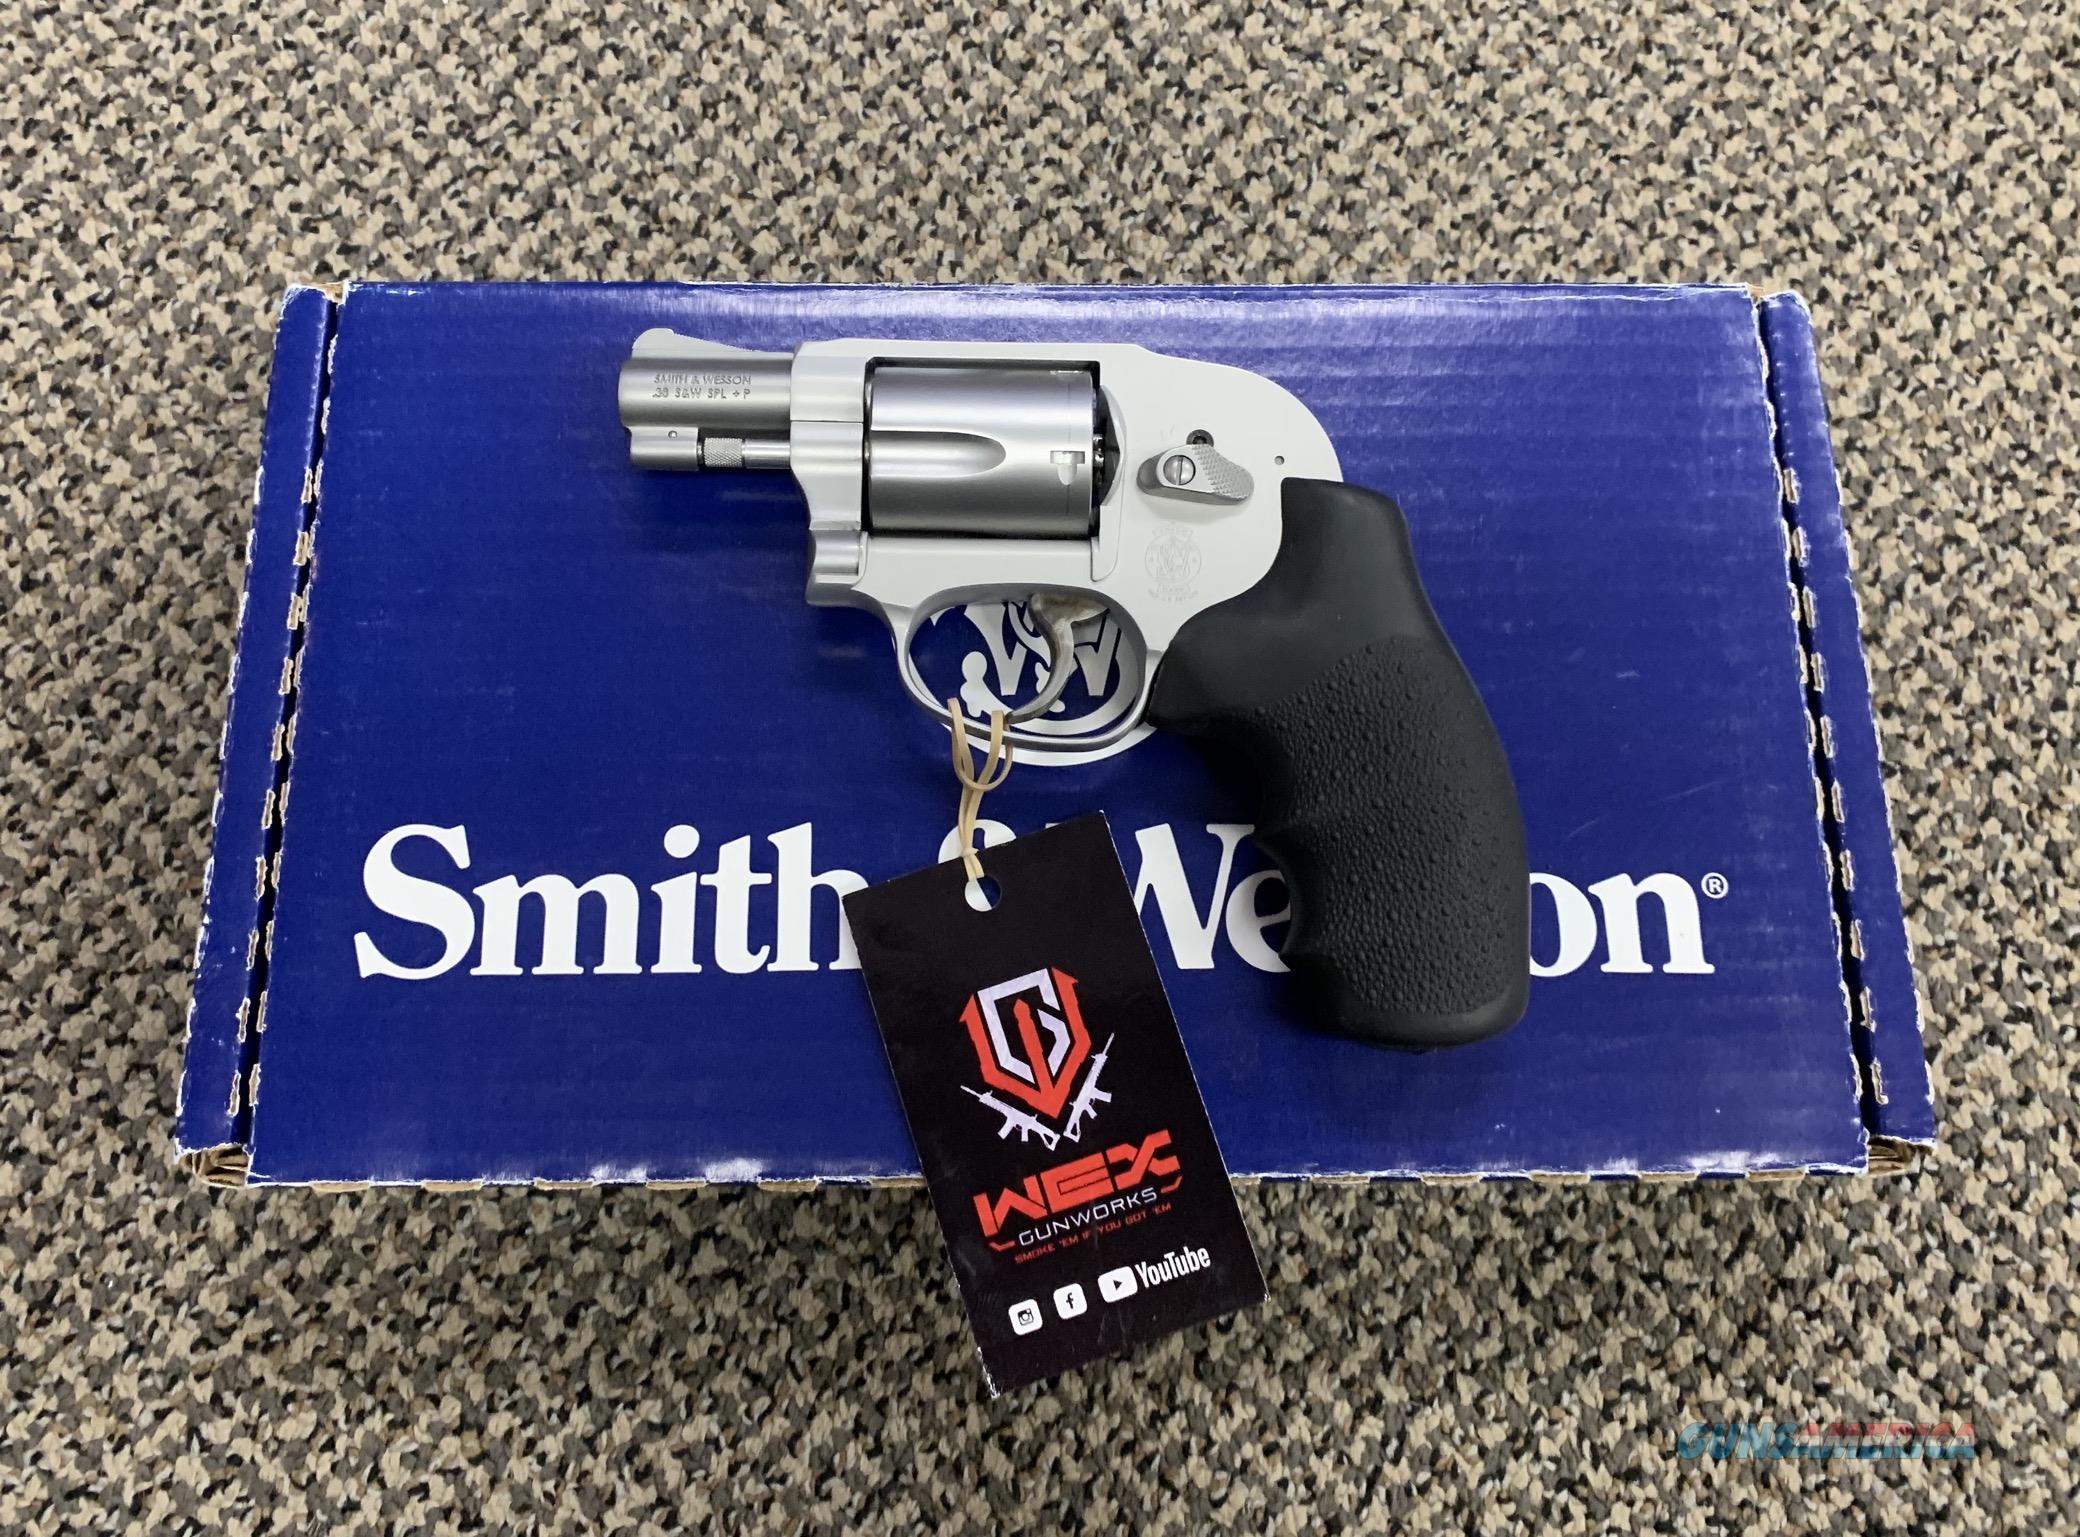 S&W MODEL 638-3 .38 SPECIAL 5 SHOT STAINLESS REVOLVER  Guns > Pistols > Smith & Wesson Revolvers > Small Frame ( J )